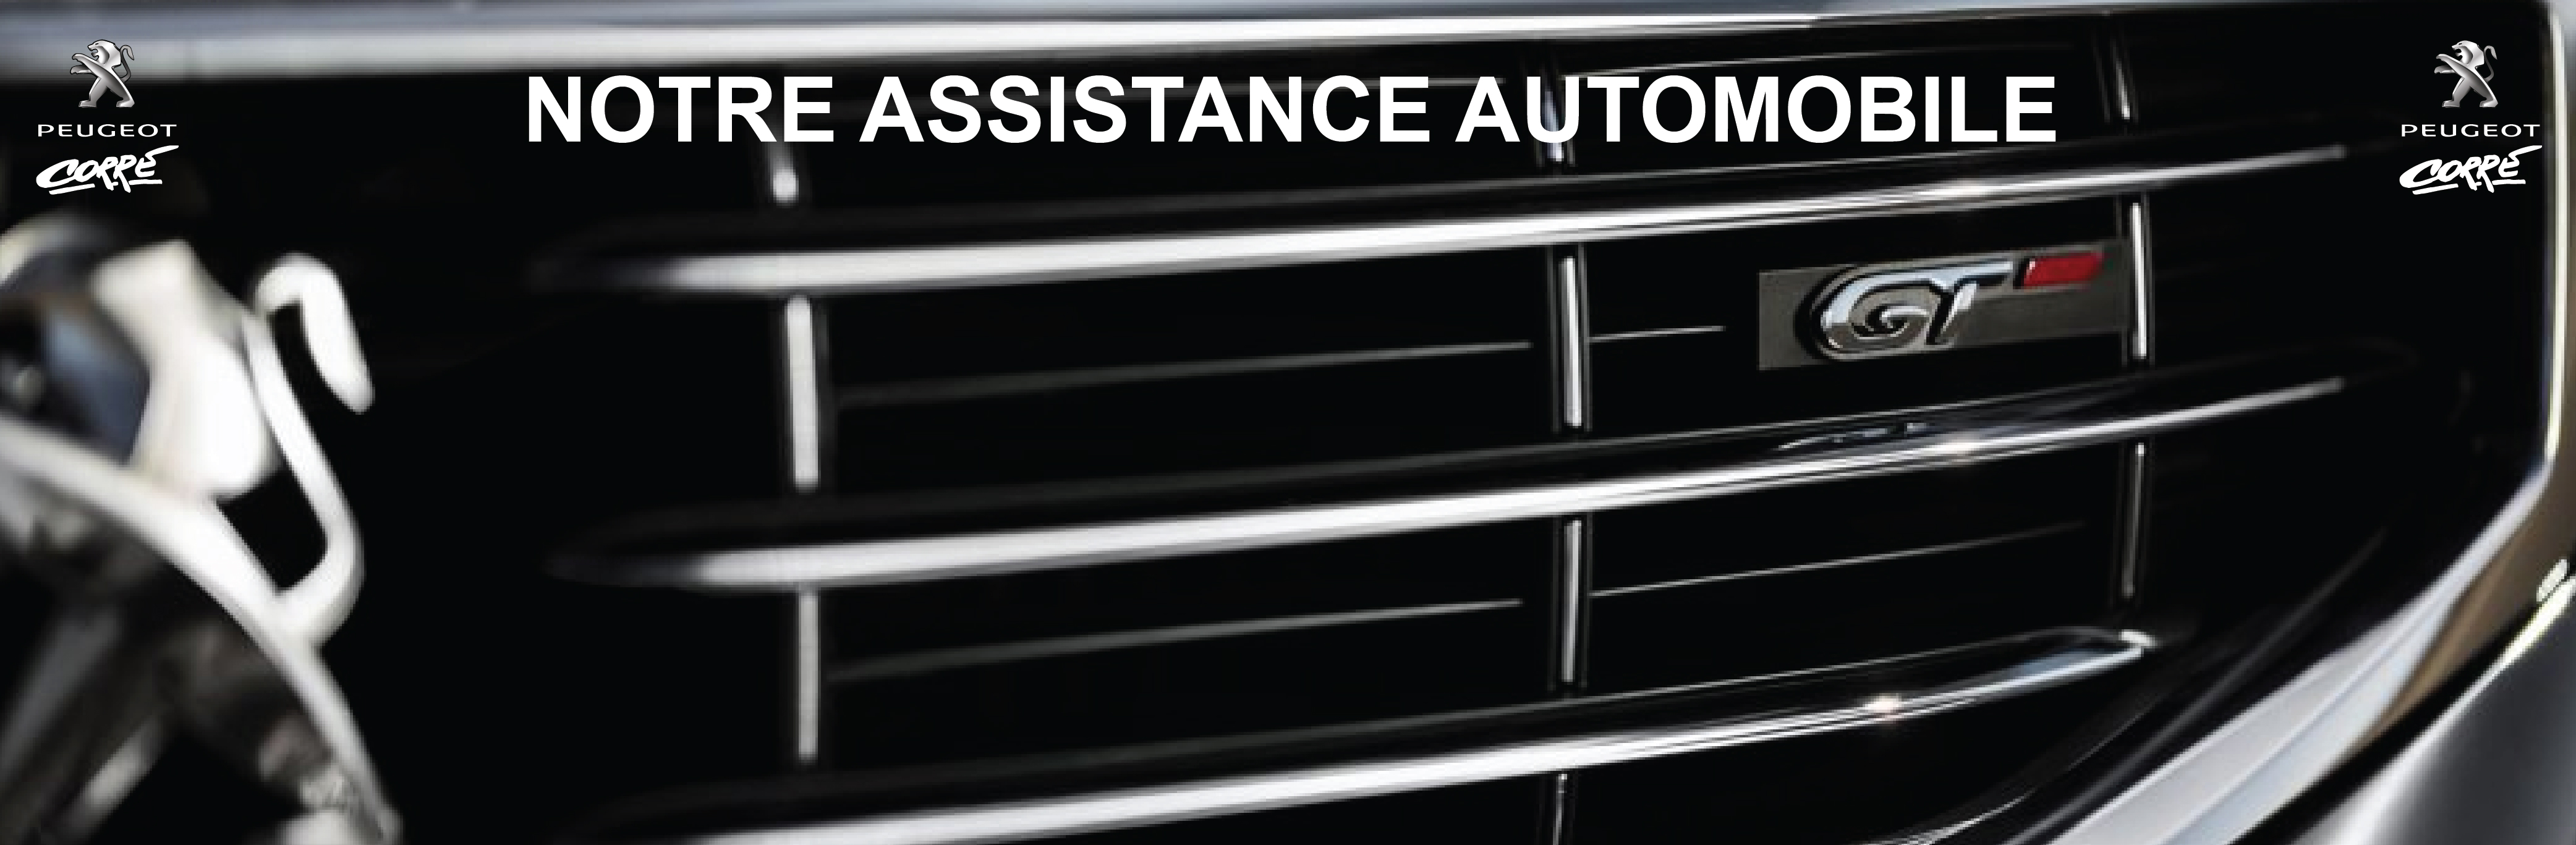 Assistance automobile orléans